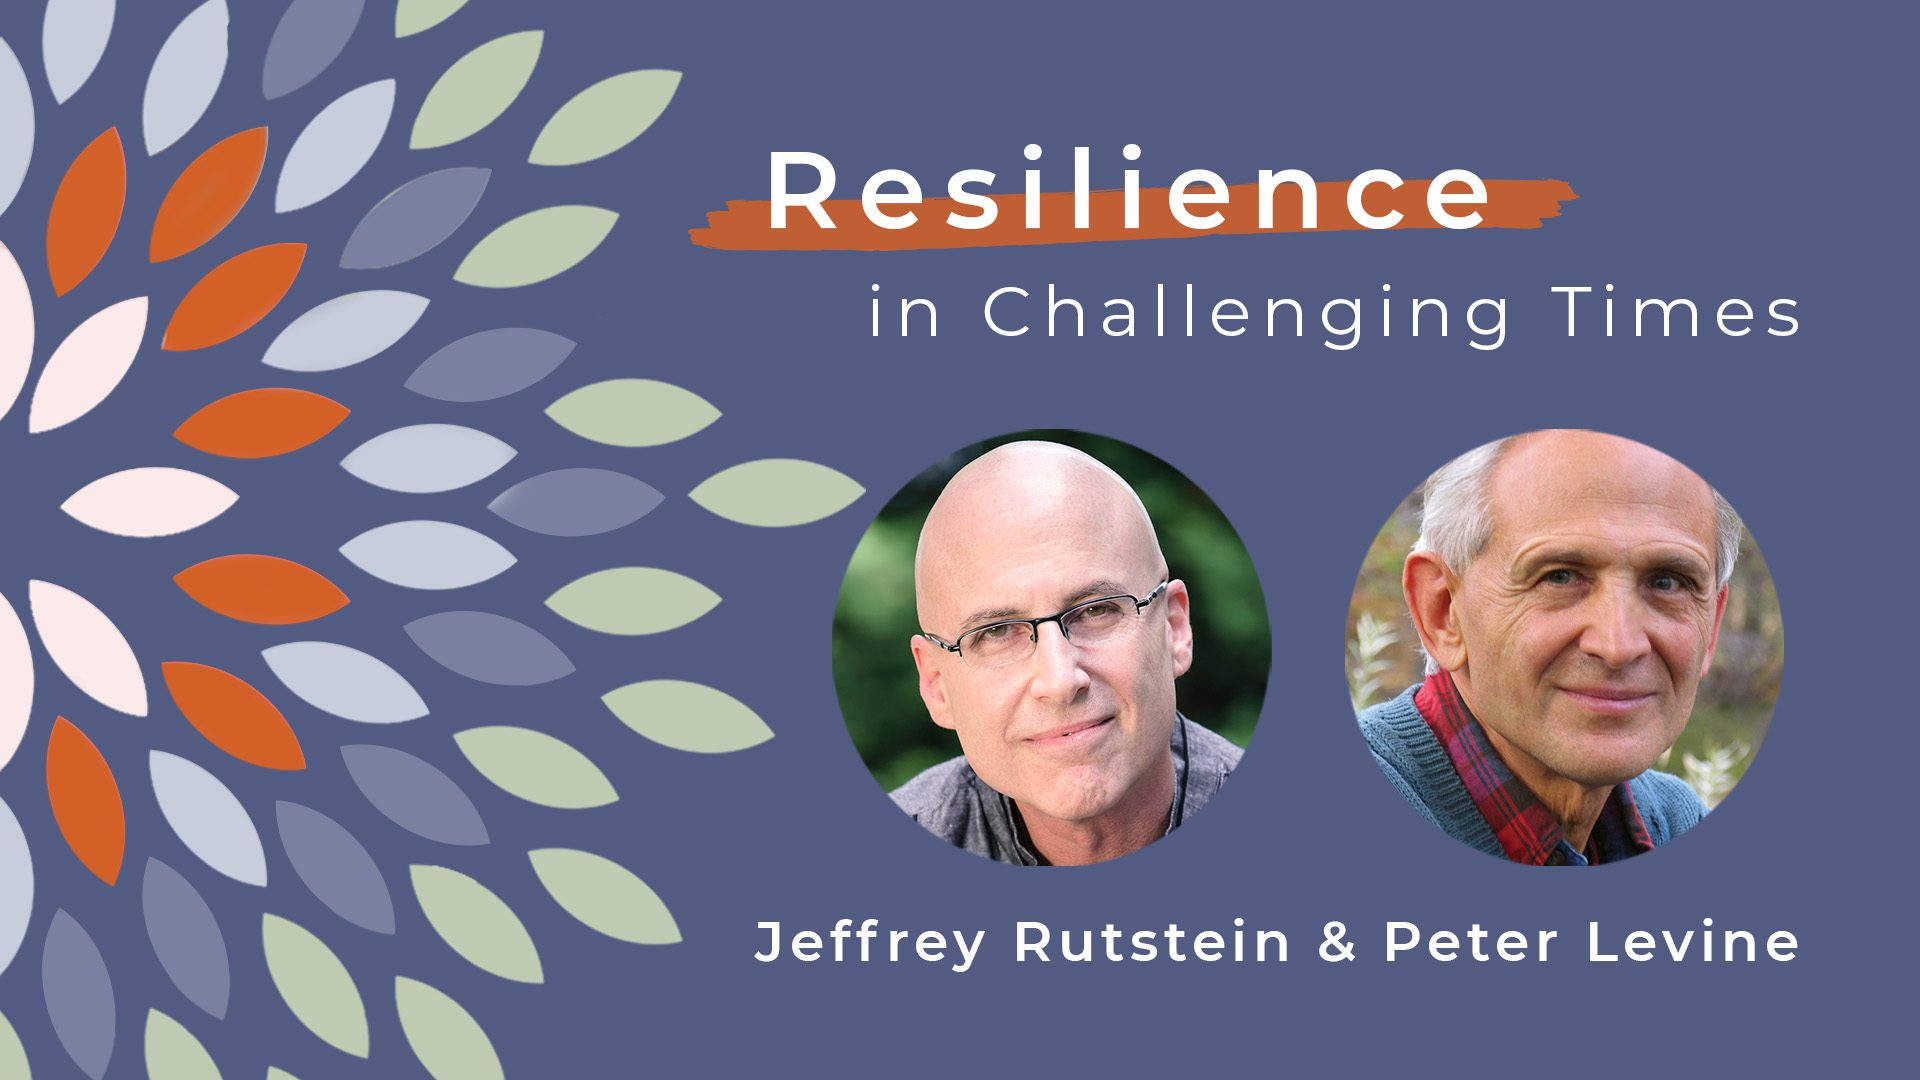 Resiliece-video-levine-rutstein-title-card-title-card